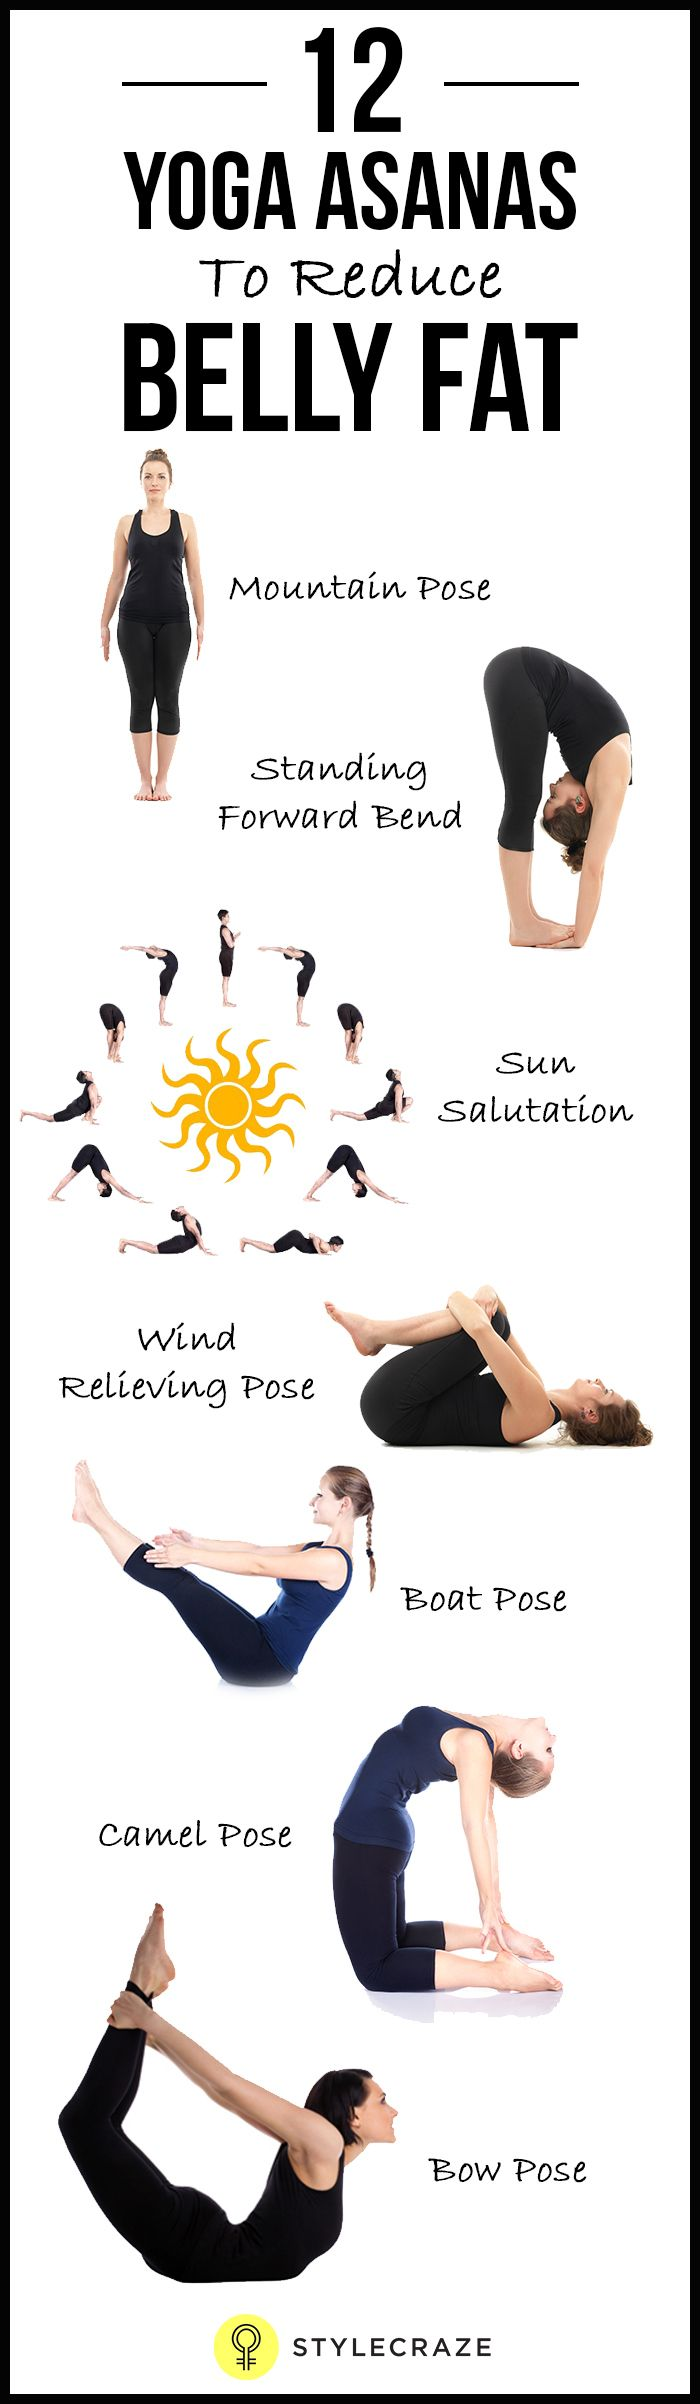 12 Yoga Asanas to Reduce Belly Fat